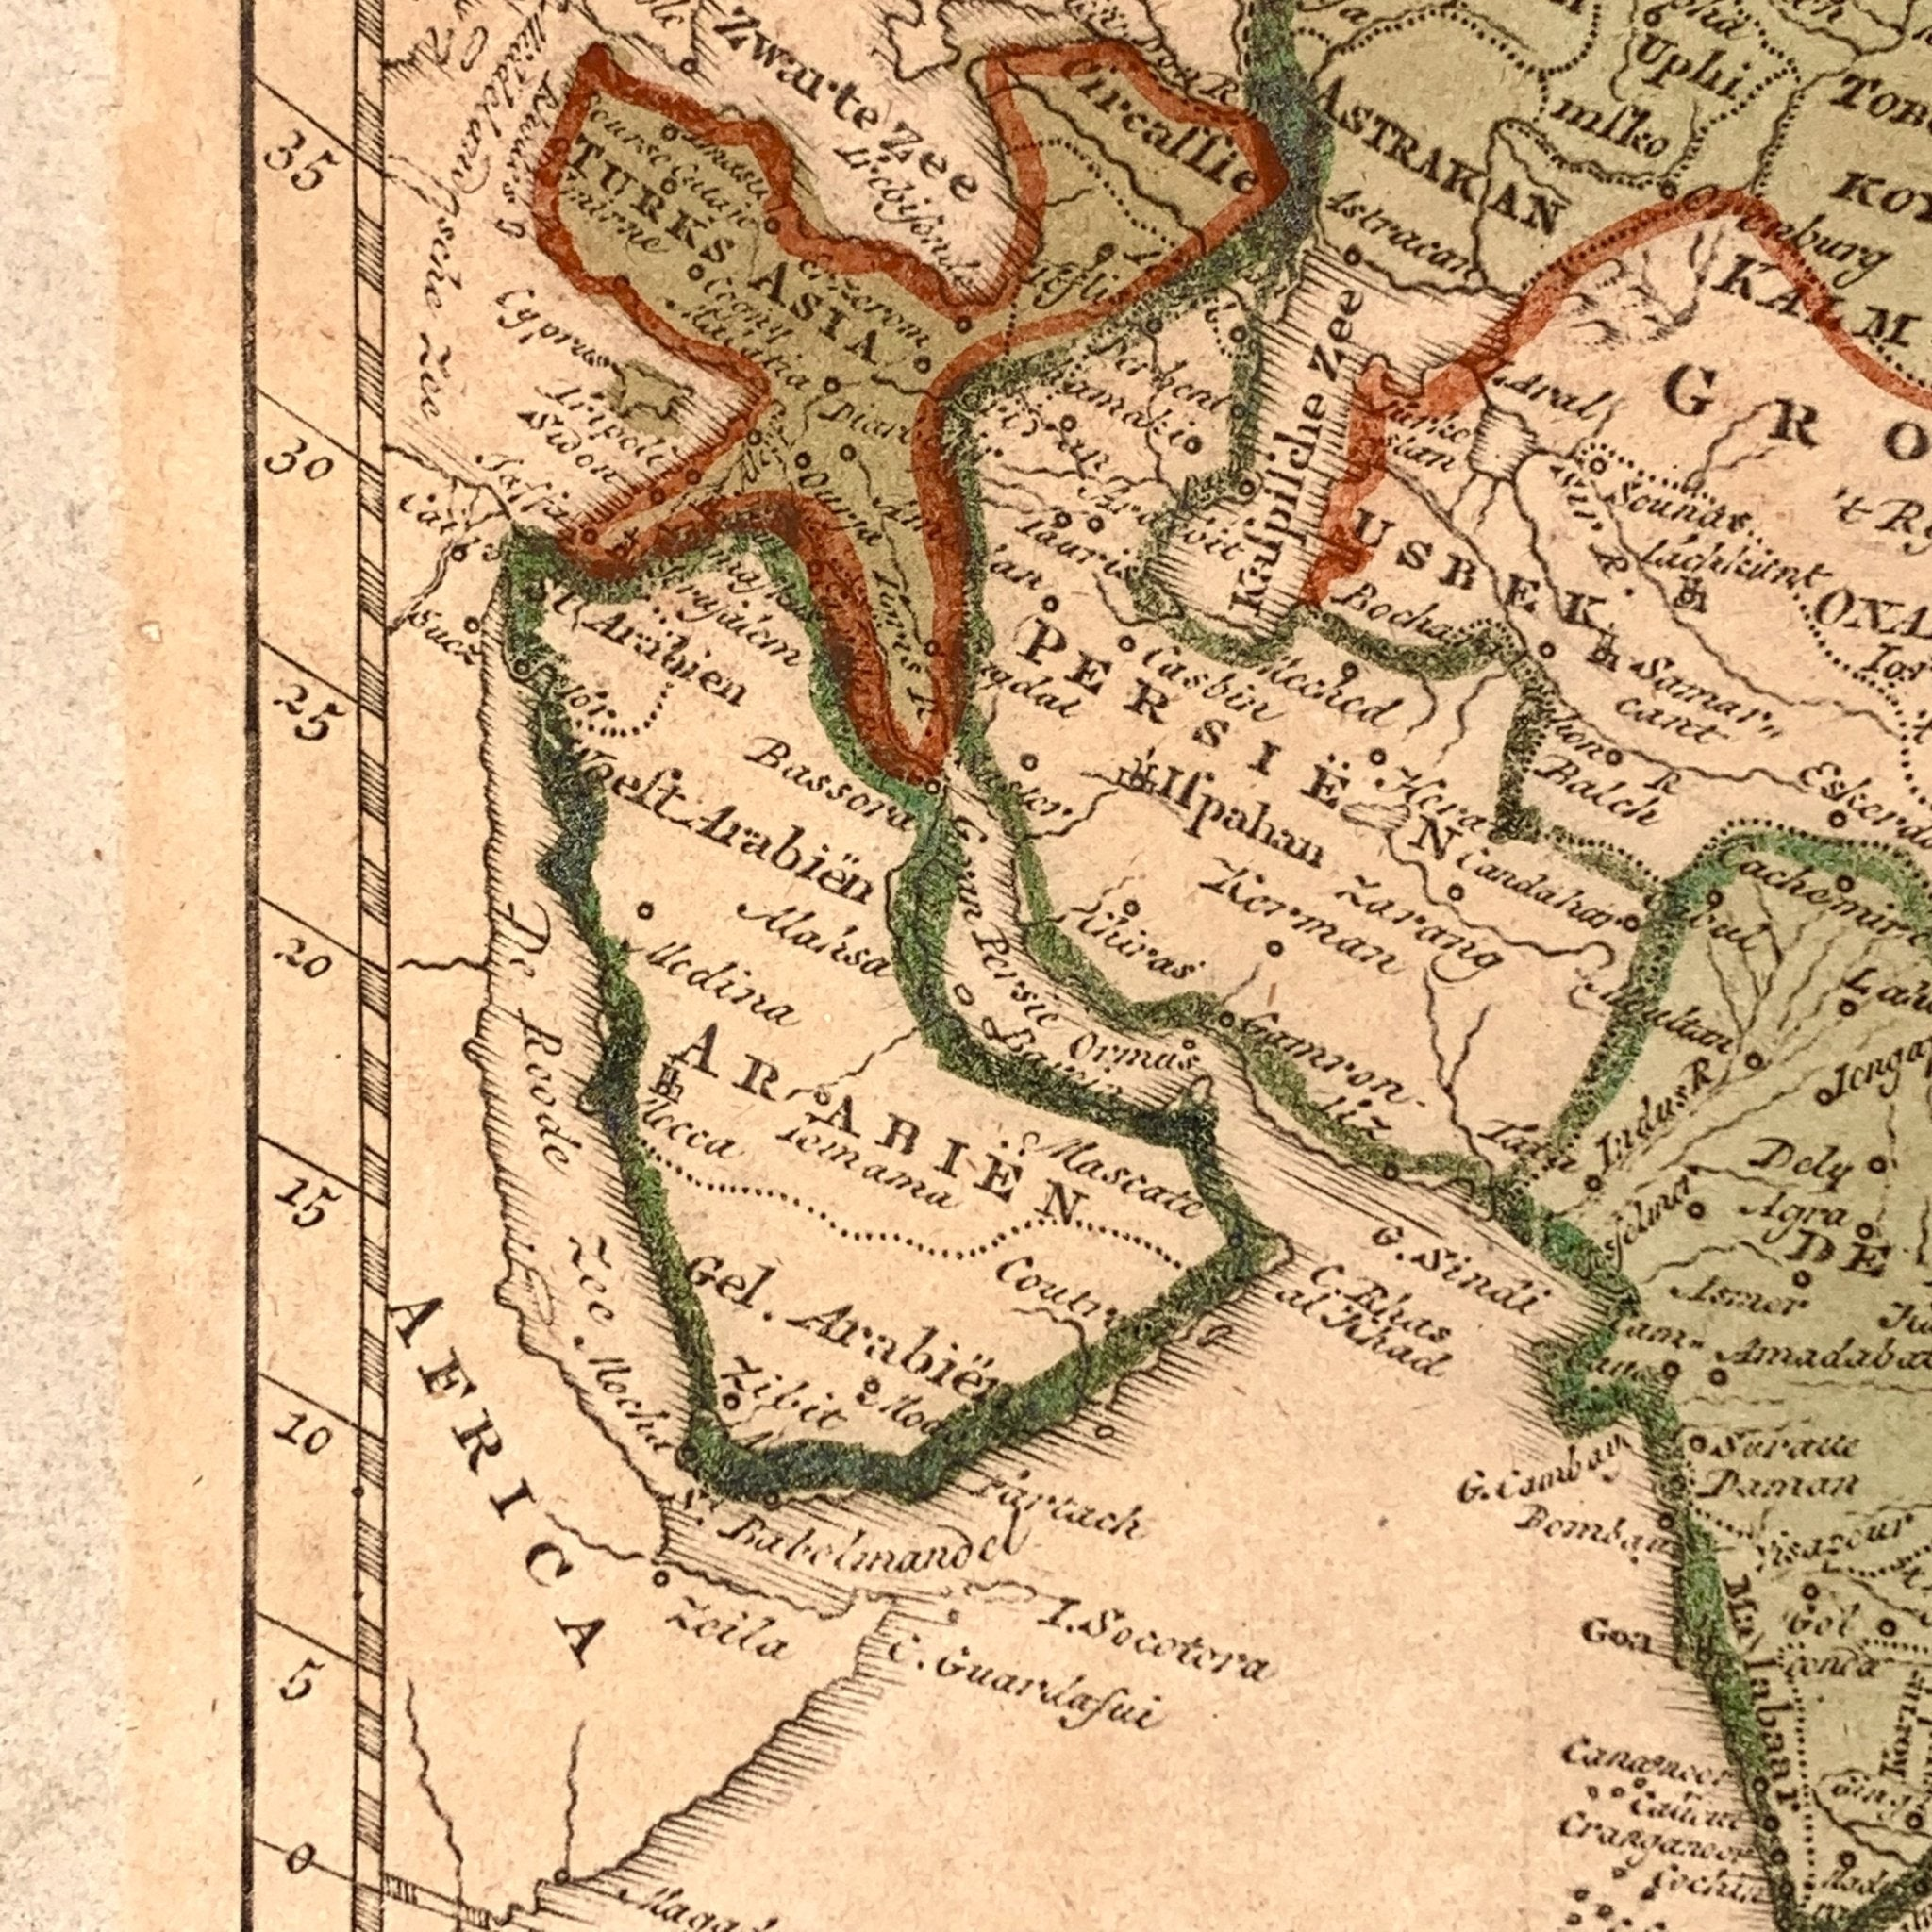 Nieuwe generale kaart van Asia - A. van Krevelt (1786) - World of Maps & Travel